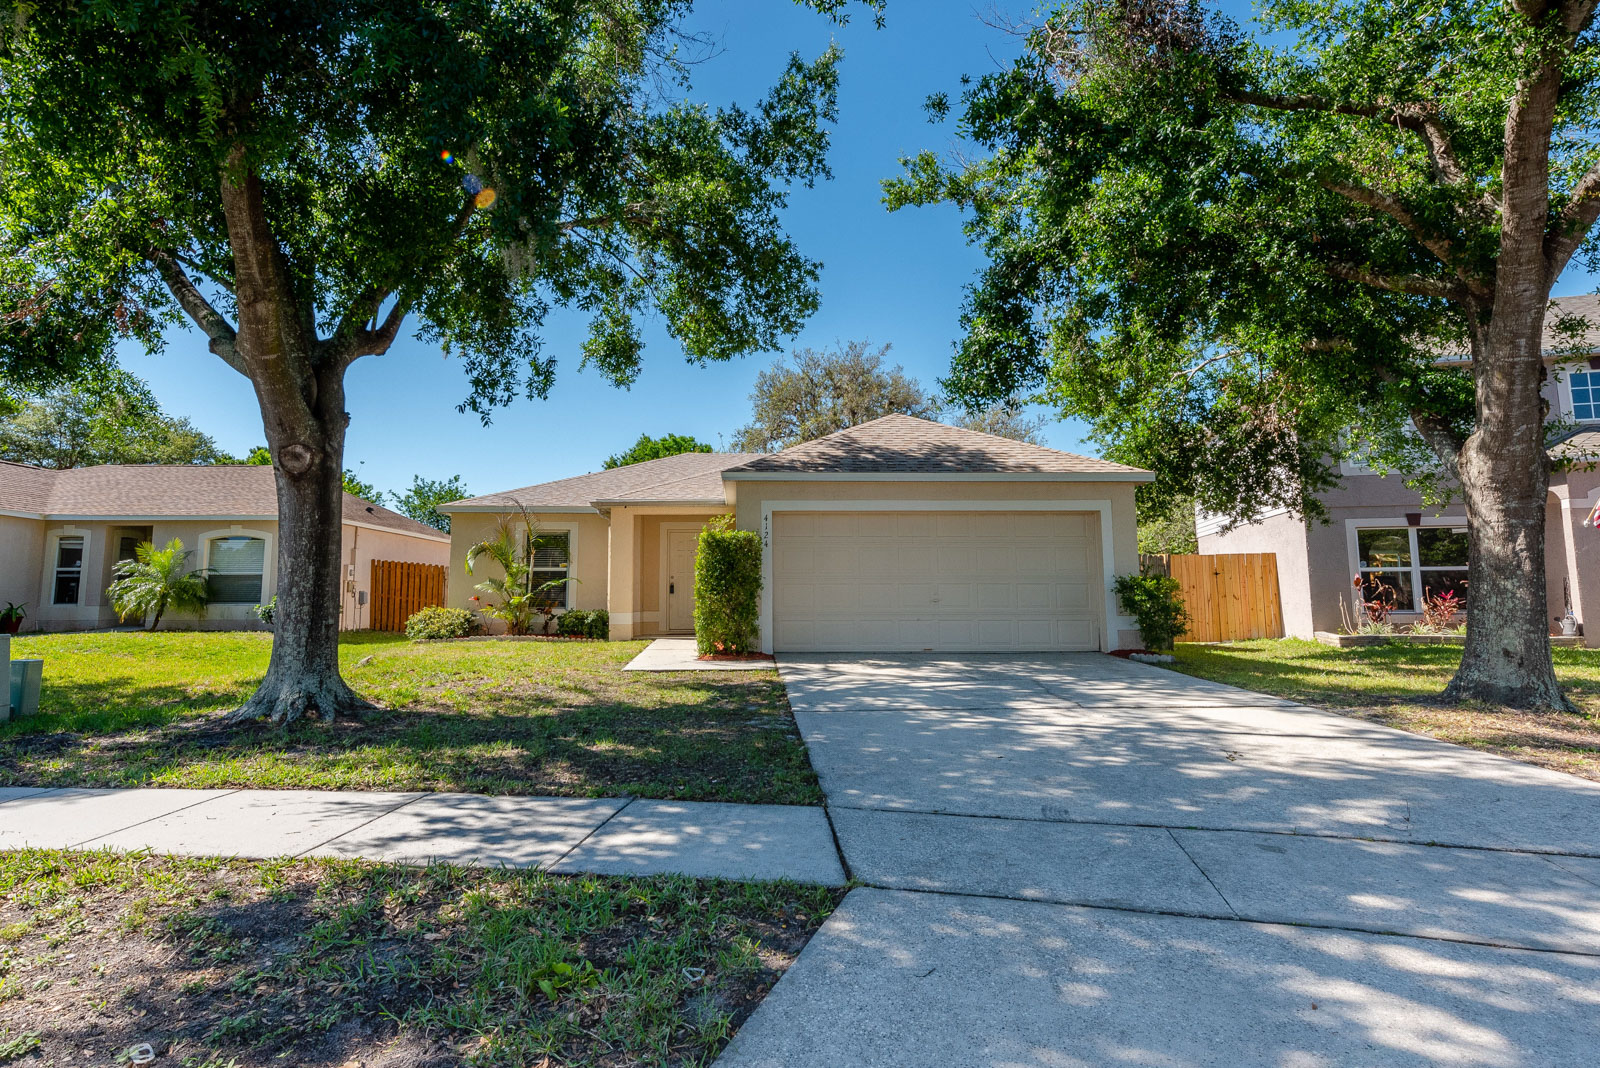 Live near the best Orlando has to offer! Your new home is located in a serene community with low HOA fees just minutes away from UCF, Waterford Lakes, and more. This stunning home showcases an open floor plan, **NEW ROOF**, an impressive fire pit, and plenty of updates. Don't miss your chance to live in this quiet community convenient to everything!